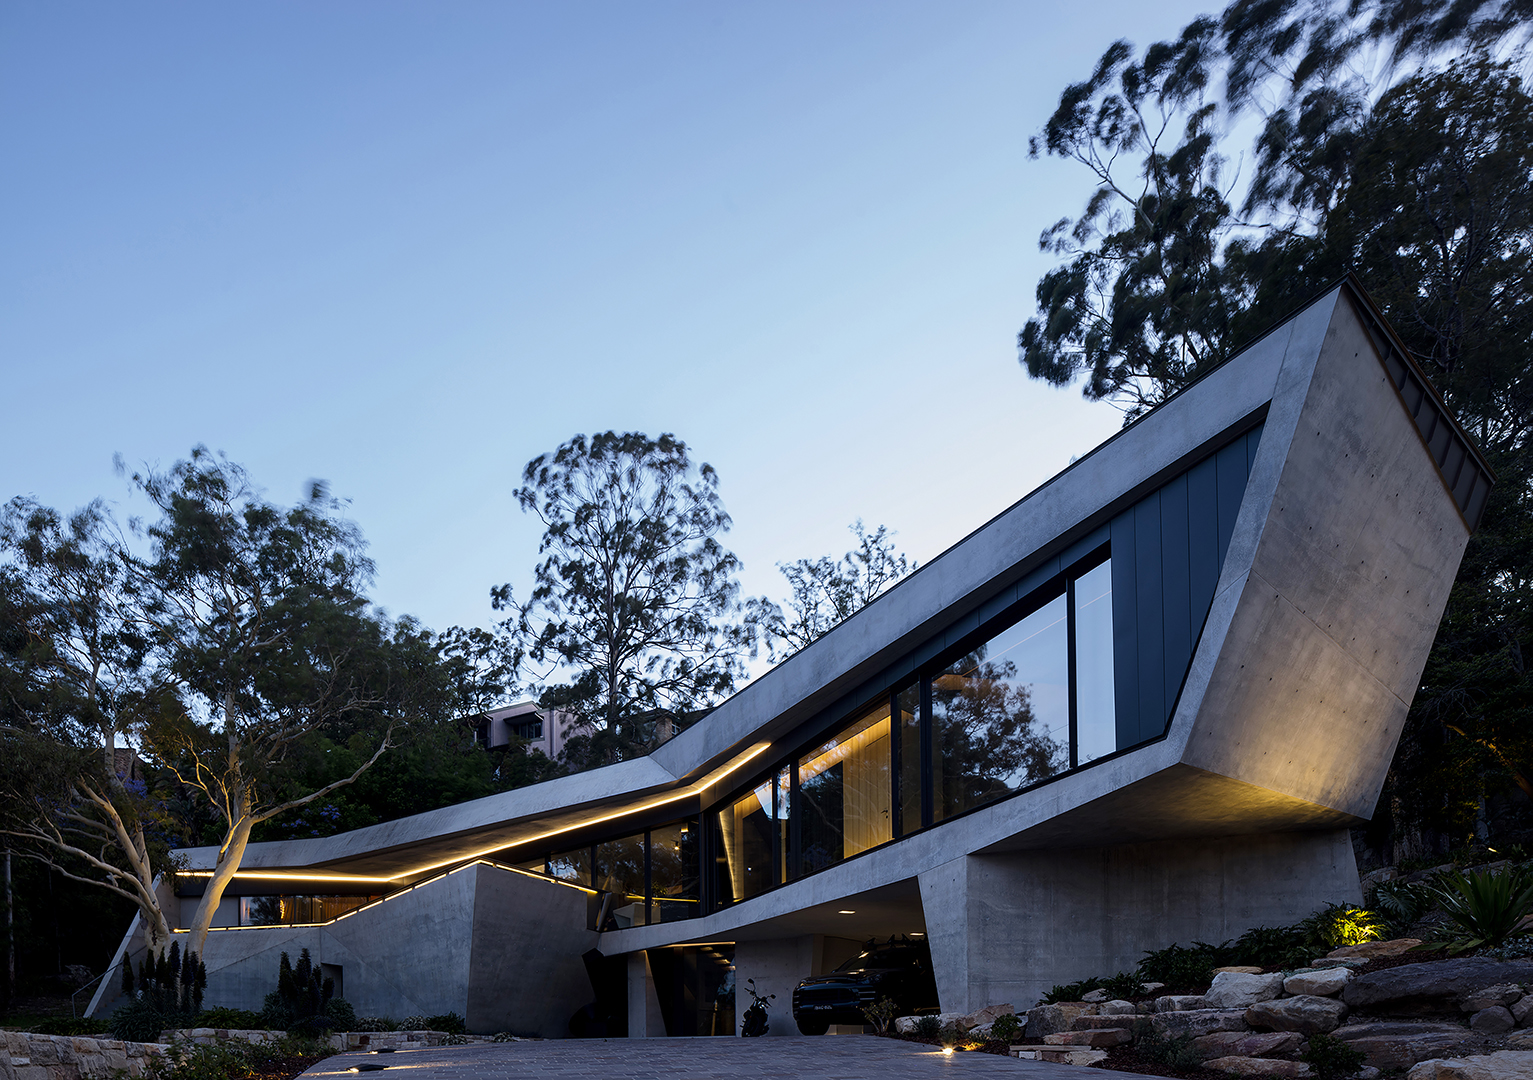 Resi_Houses_joint_3rd_place_Commendation_-_Castle_Cove_House_pic_by_Brett_Boardman_supplied_by_AIA_NSW_ef31iw